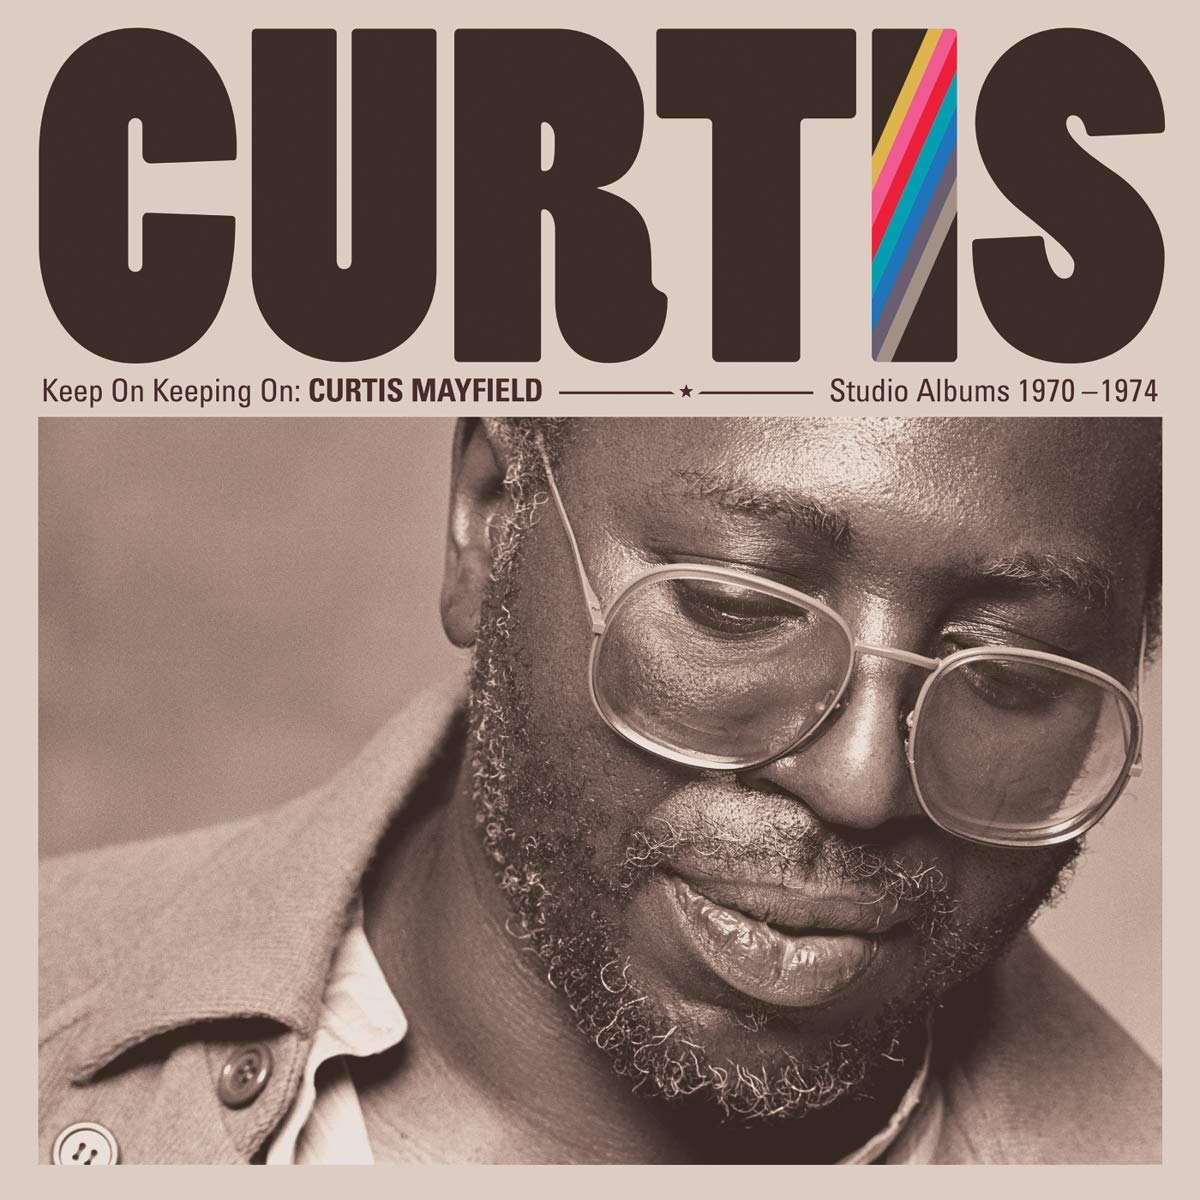 Curtis Mayfield. Keep On Keeping On. Curtis Mayfield Studio Albums 1970-1974 (4 LP) abba the studio albums 8 lp